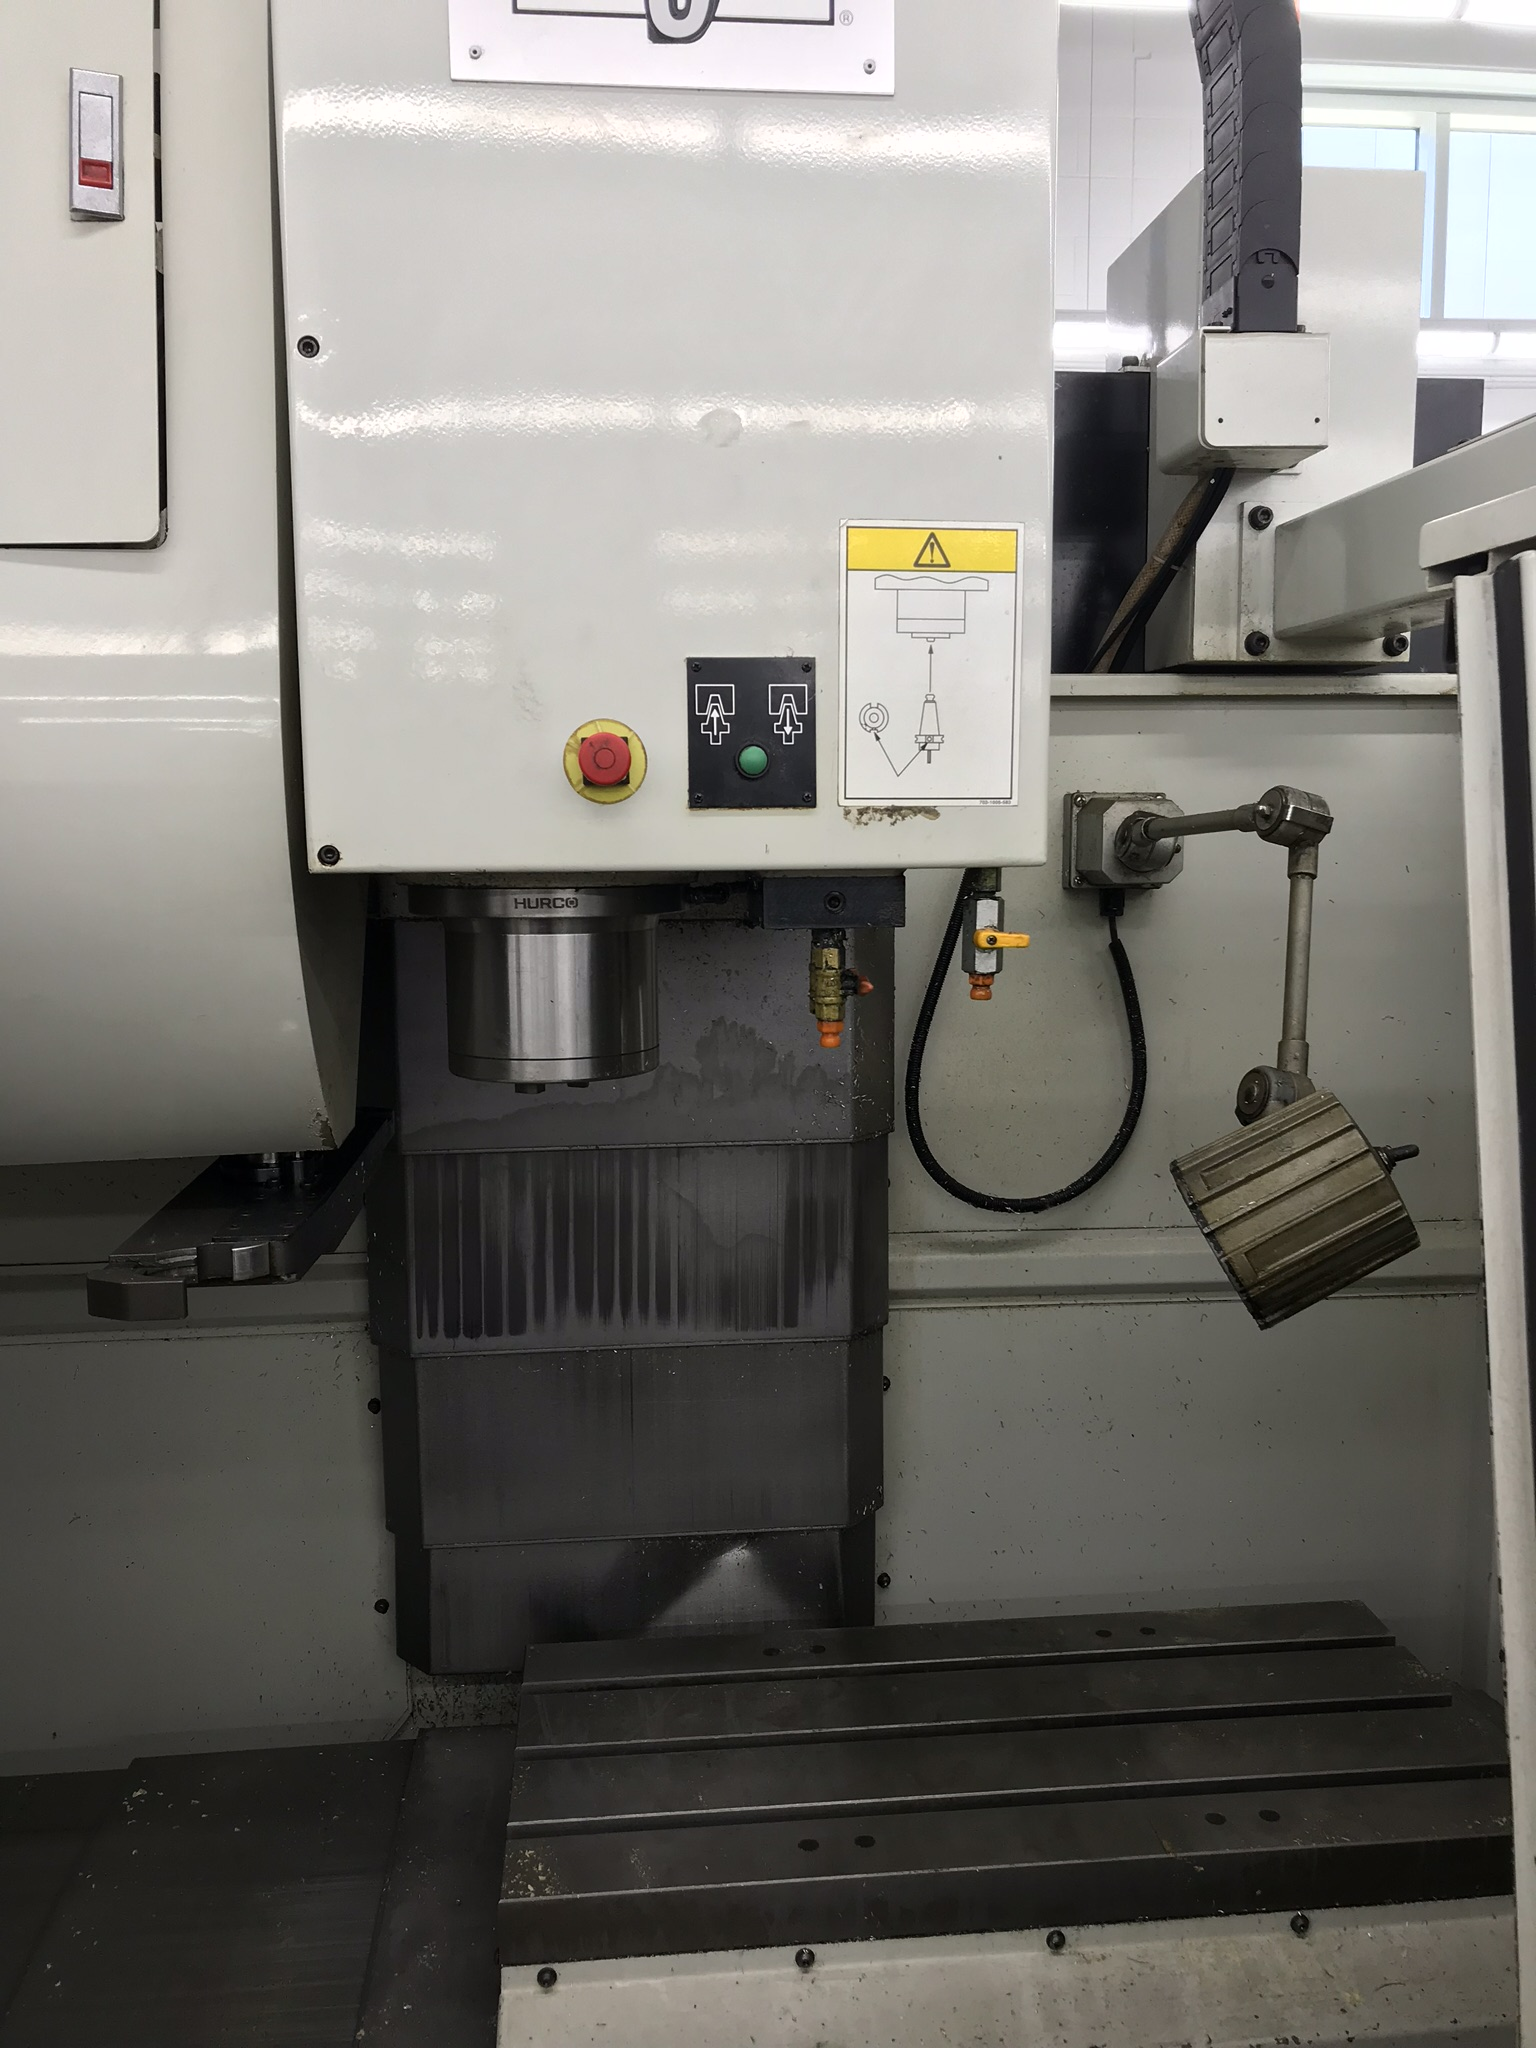 Hurco VM-1 CNC Vertical Machining Center, Spindle Recently Replaced, Approx 6,500 Hours, Max Control - Image 2 of 6